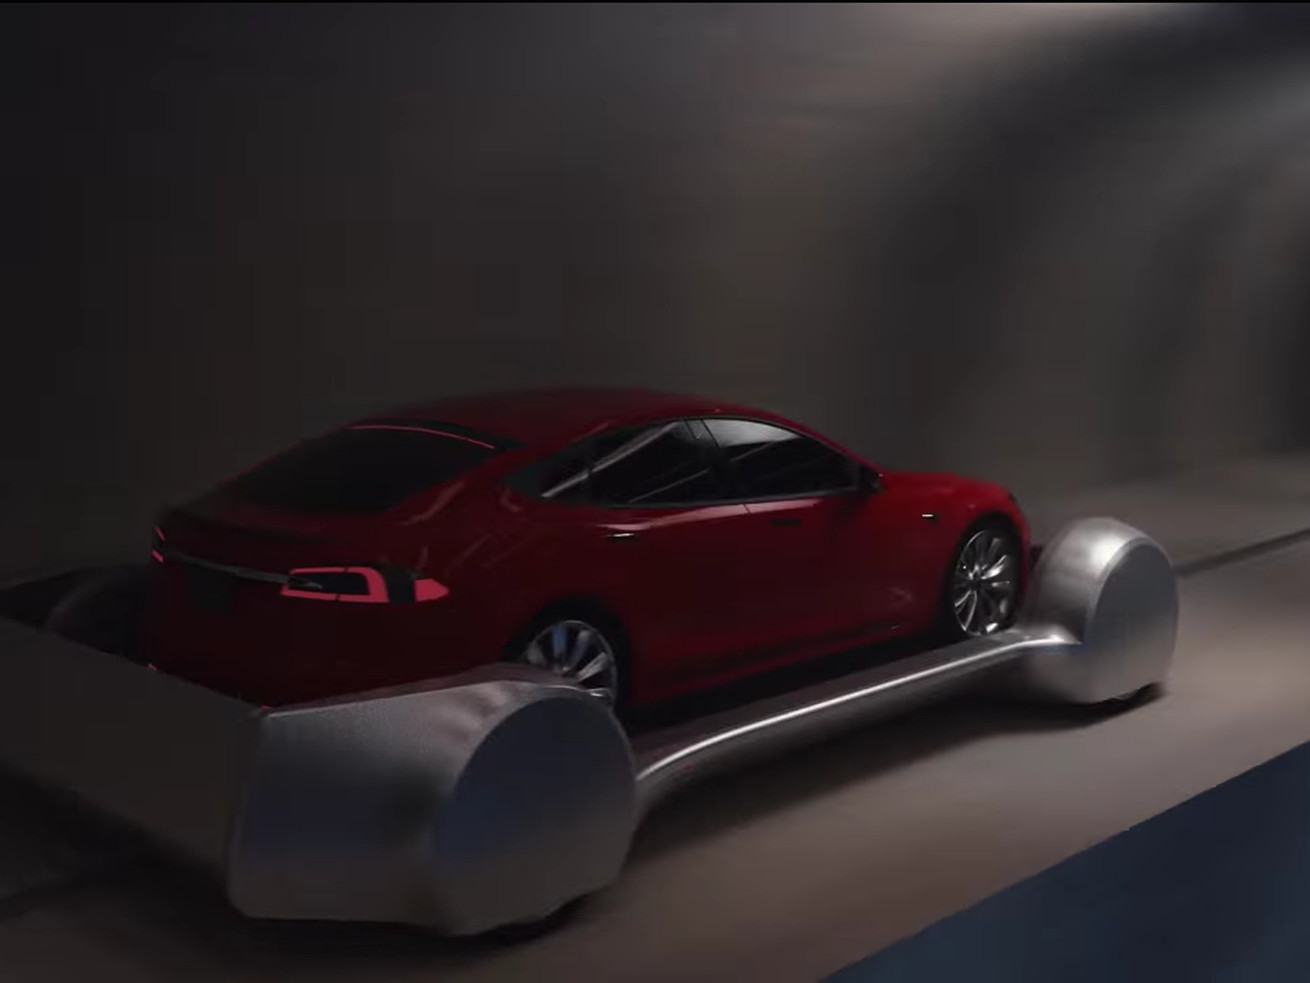 A rendering of a car in one of Musk's proposed tunnels.